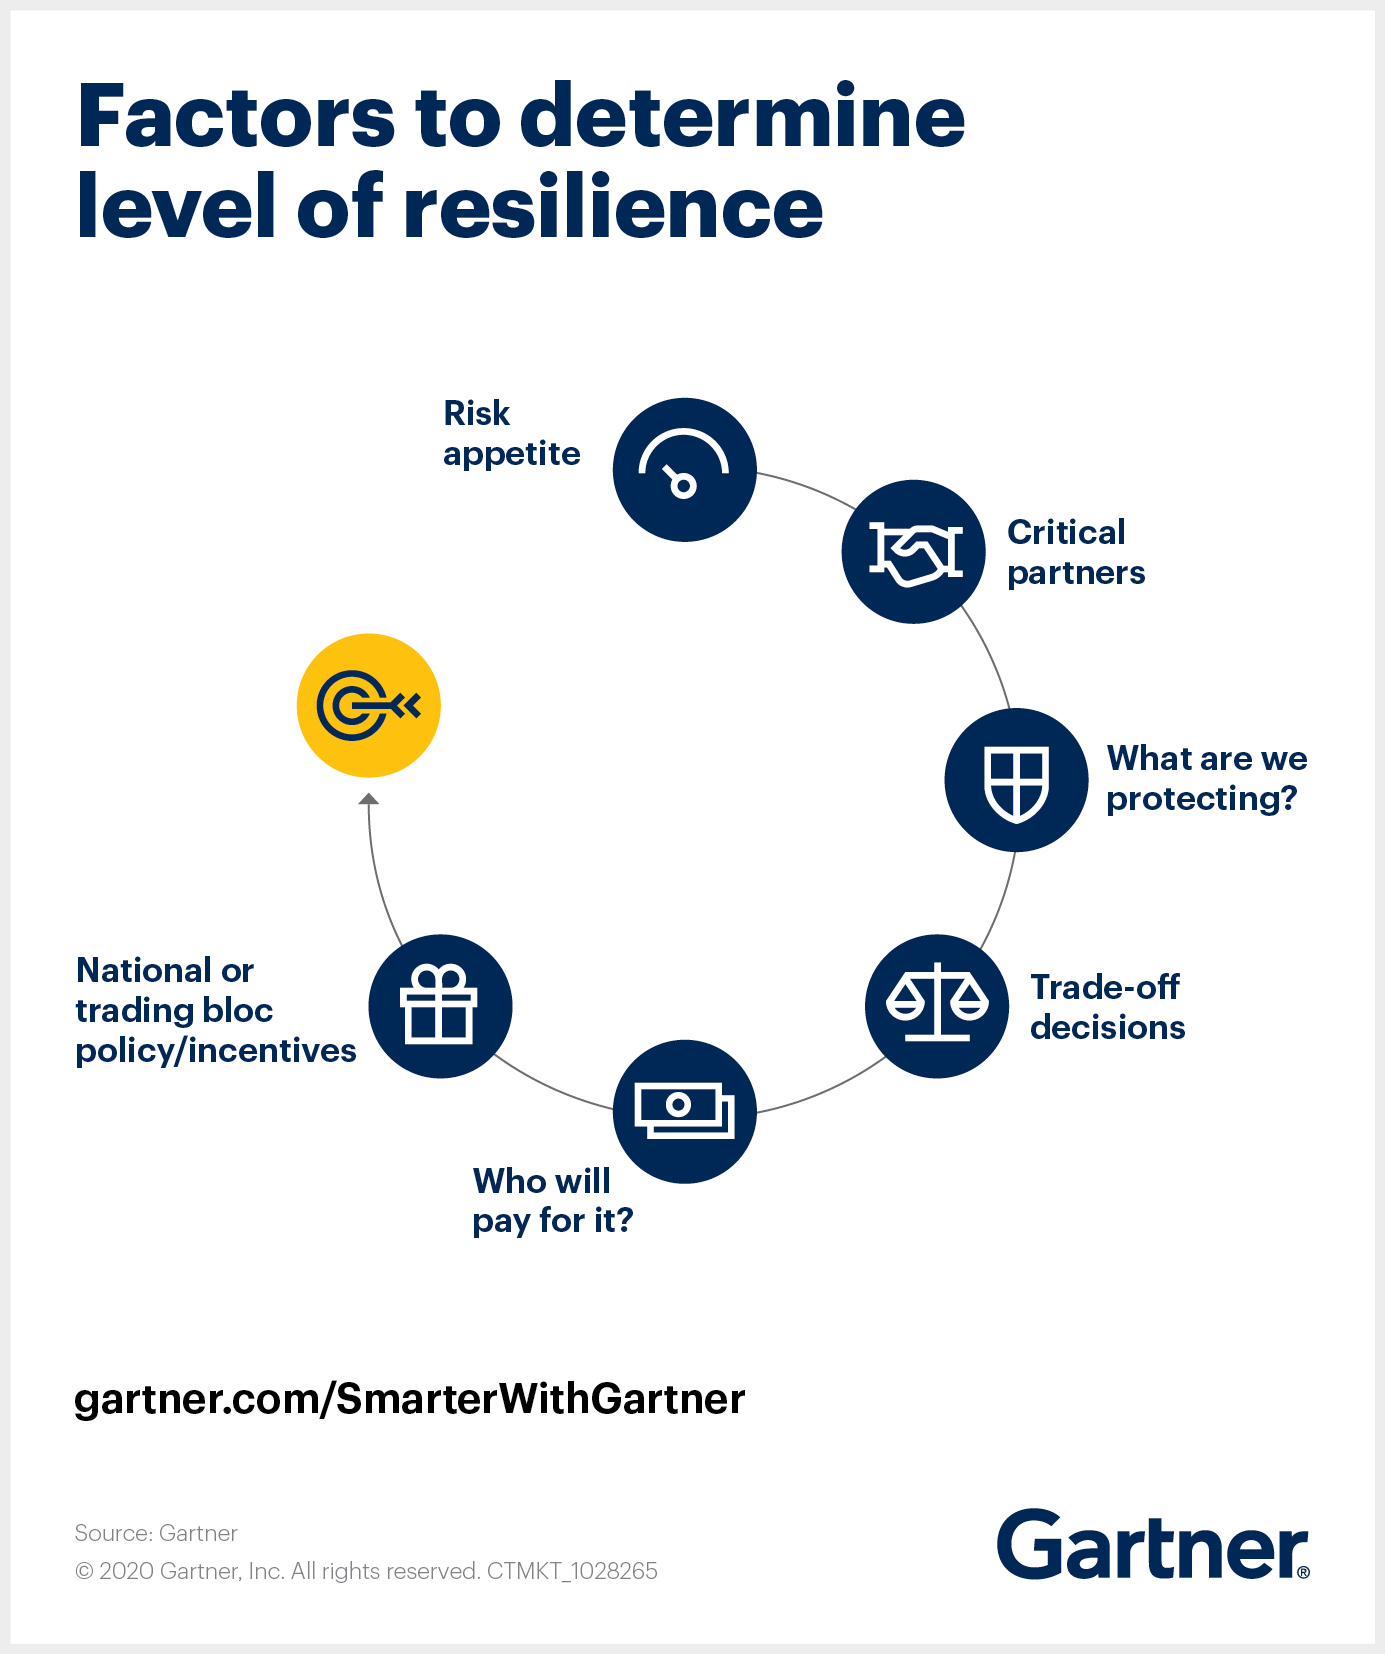 Factors to determine global supply chain level of resilience